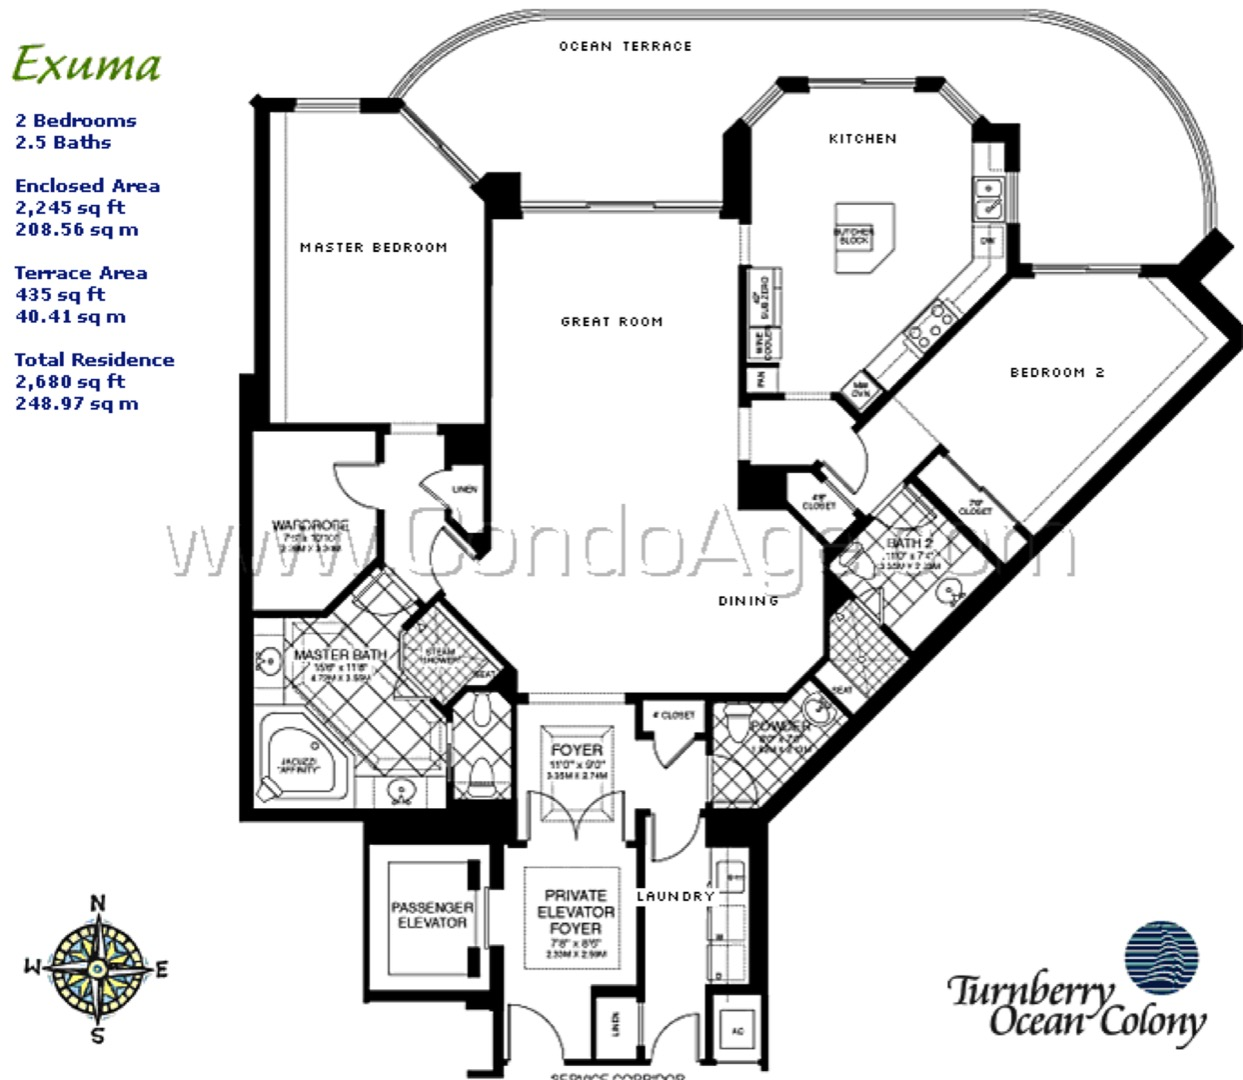 Exuma floor plan image